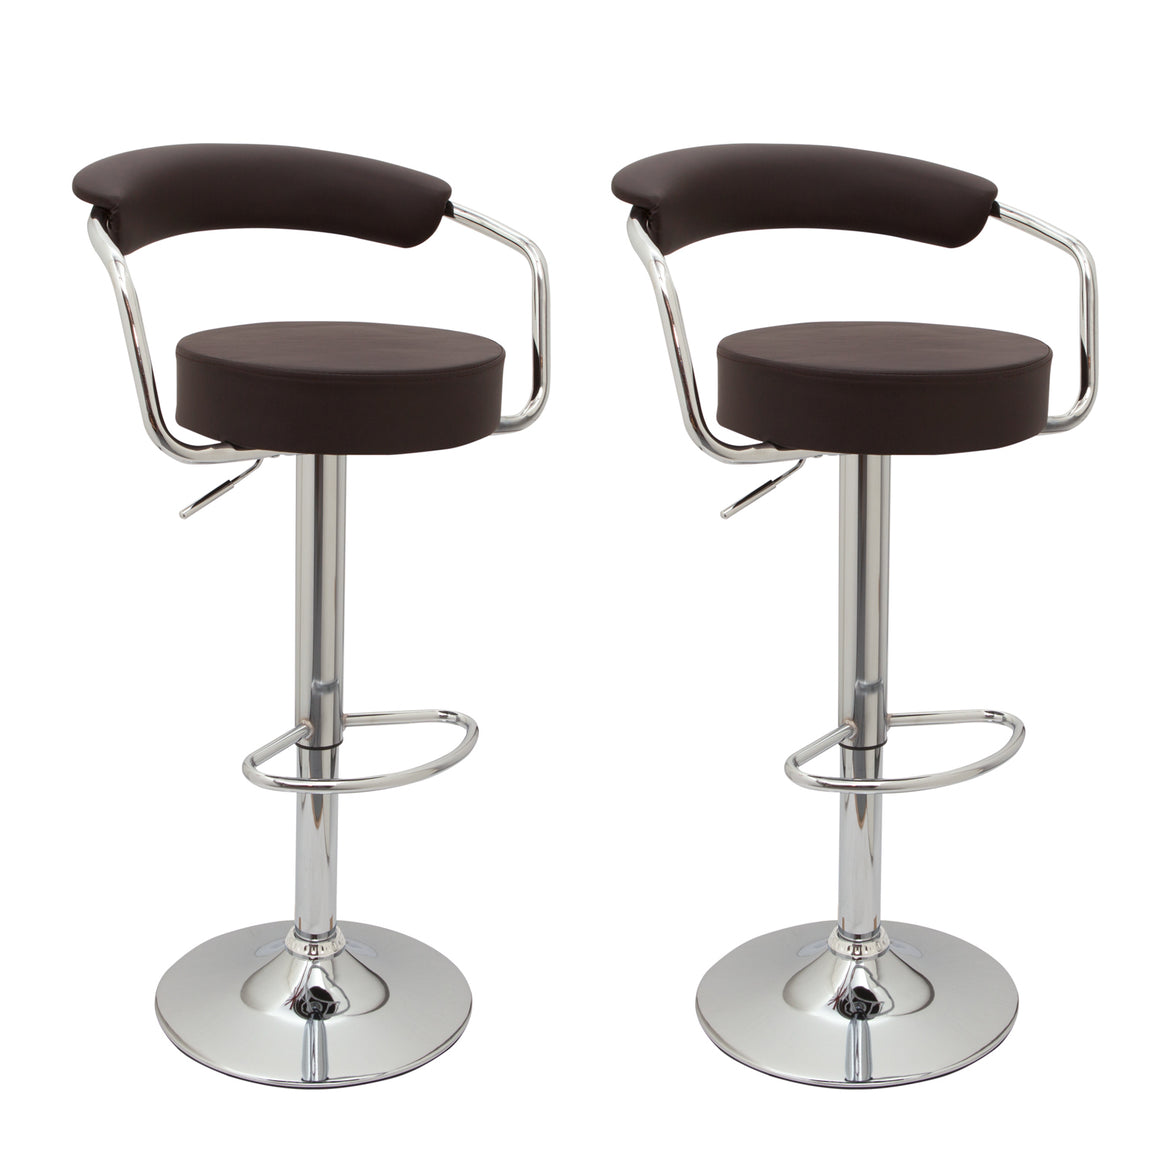 Pair of Toledo Bar Stools (Black, Cream, Red, White, Brown, Grey)